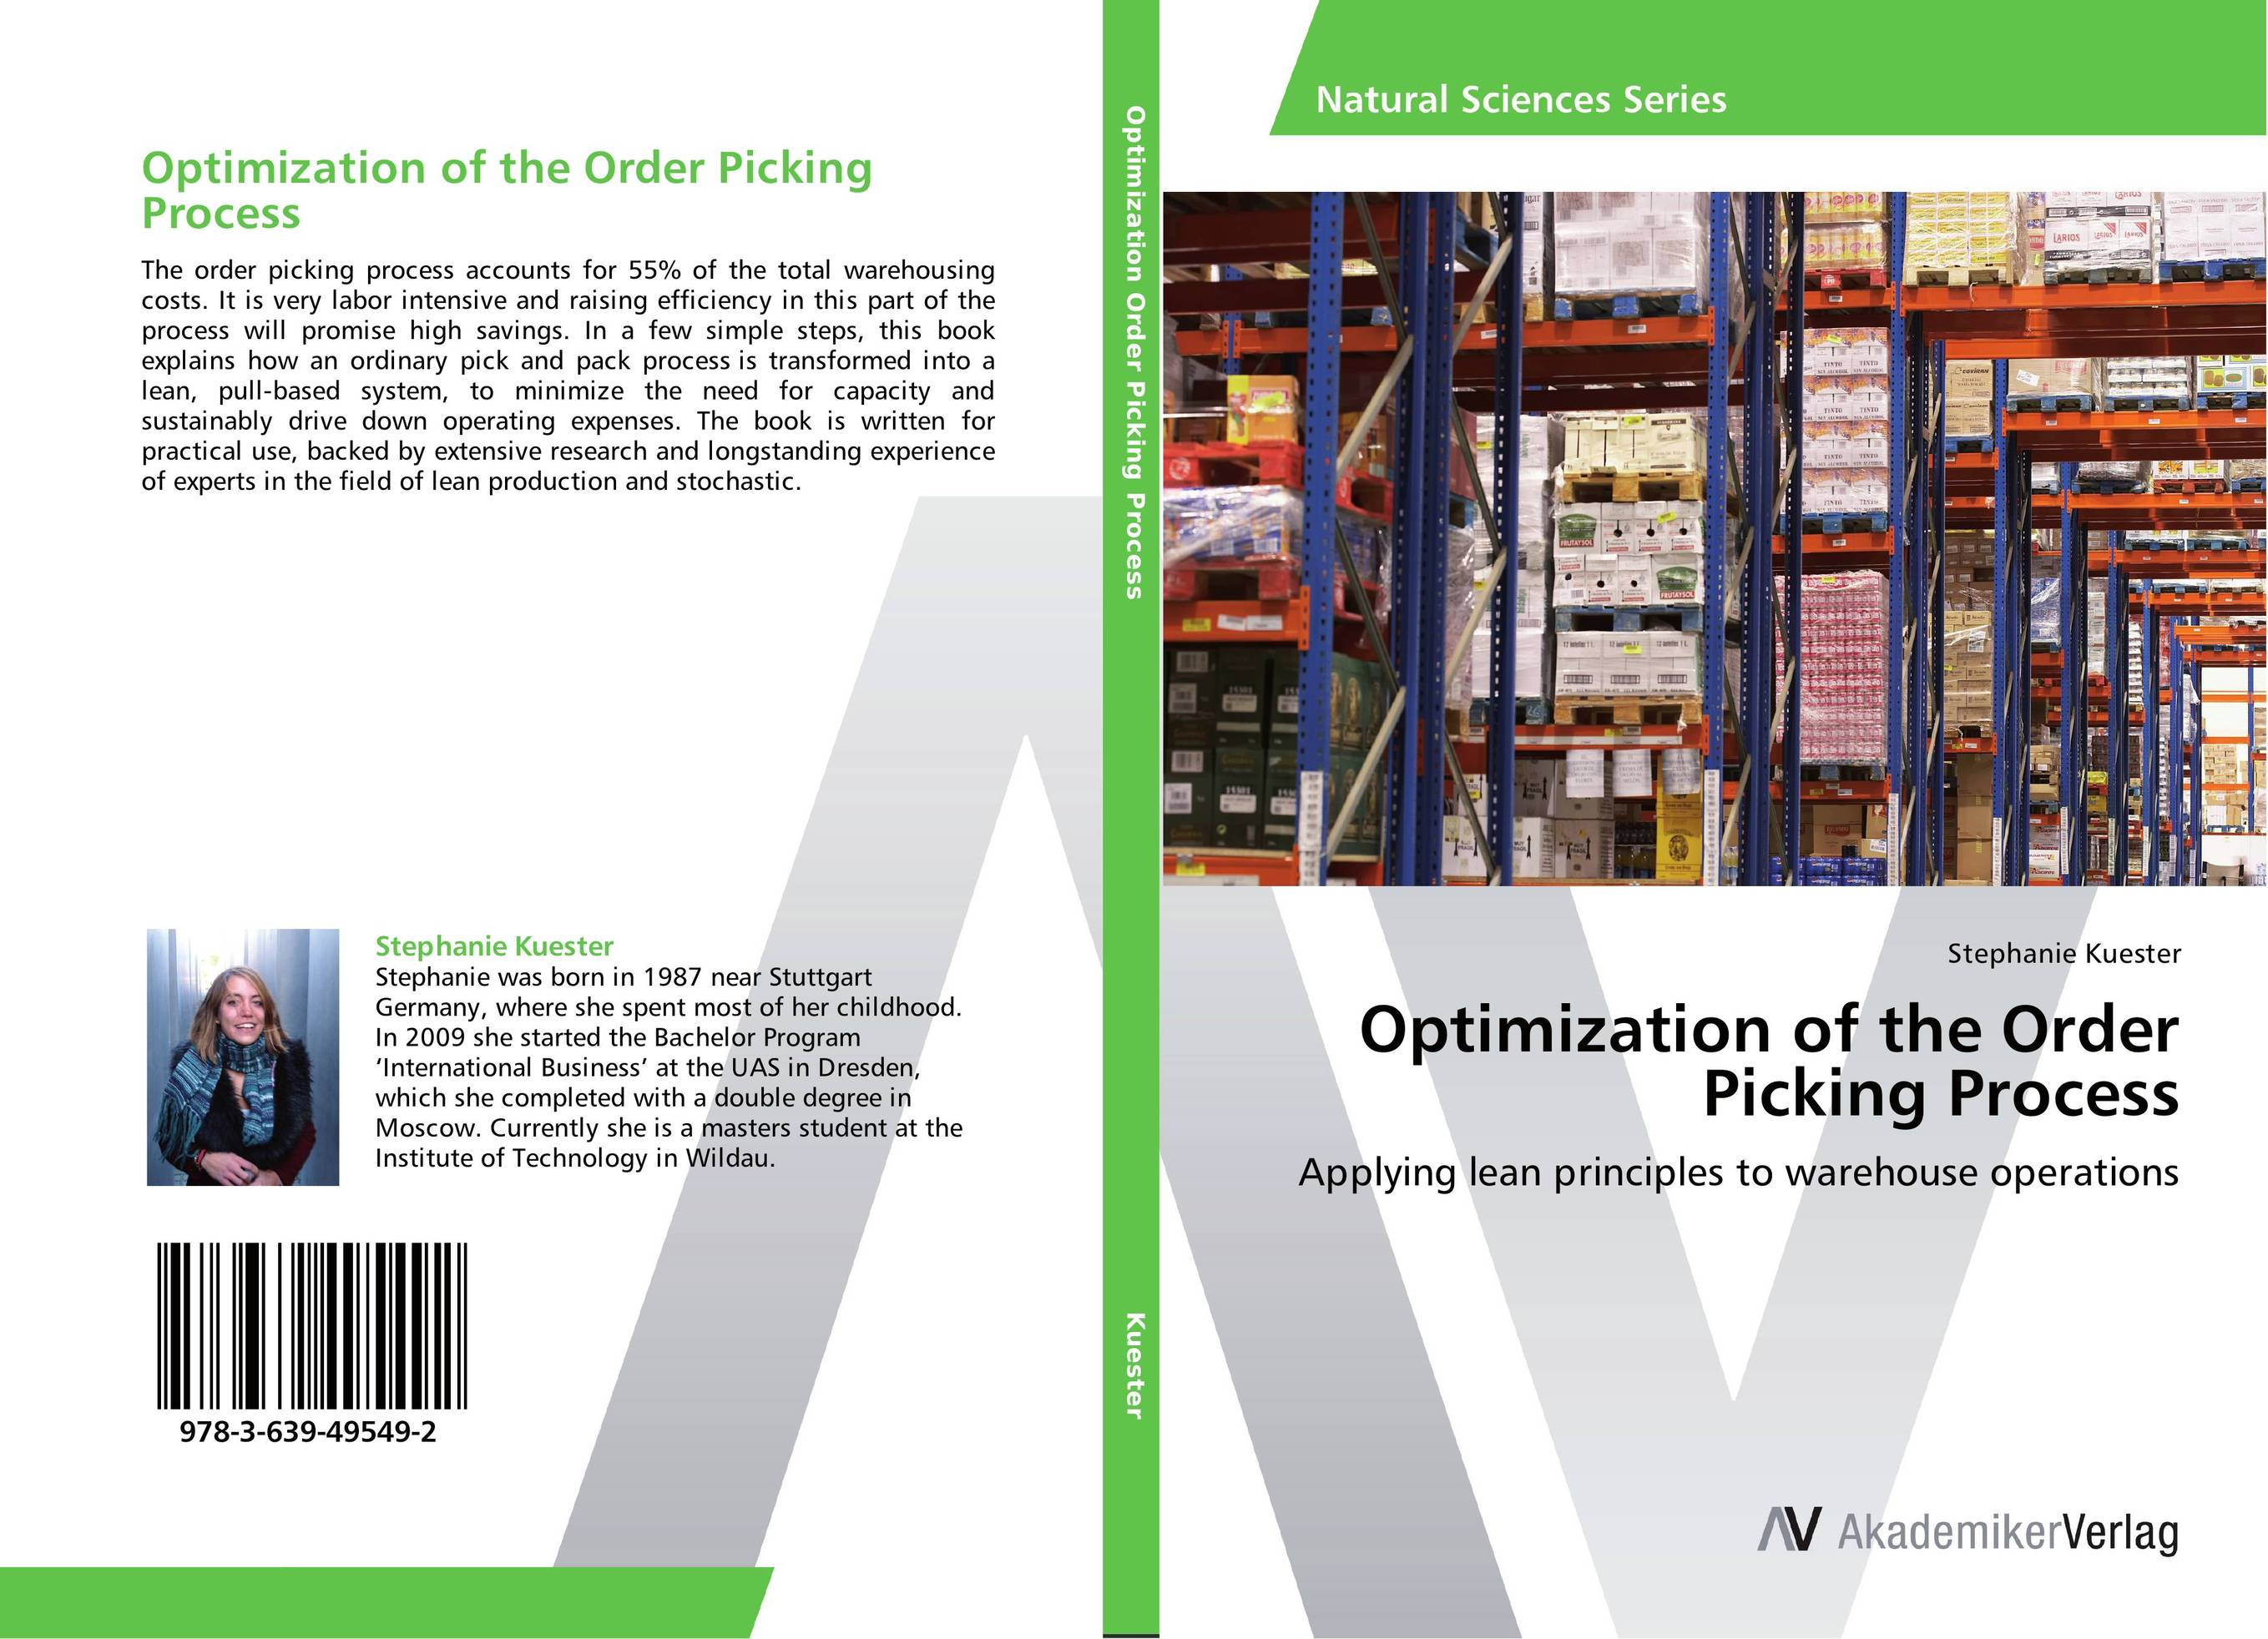 Optimization of the Order Picking Process john earley the lean book of lean a concise guide to lean management for life and business